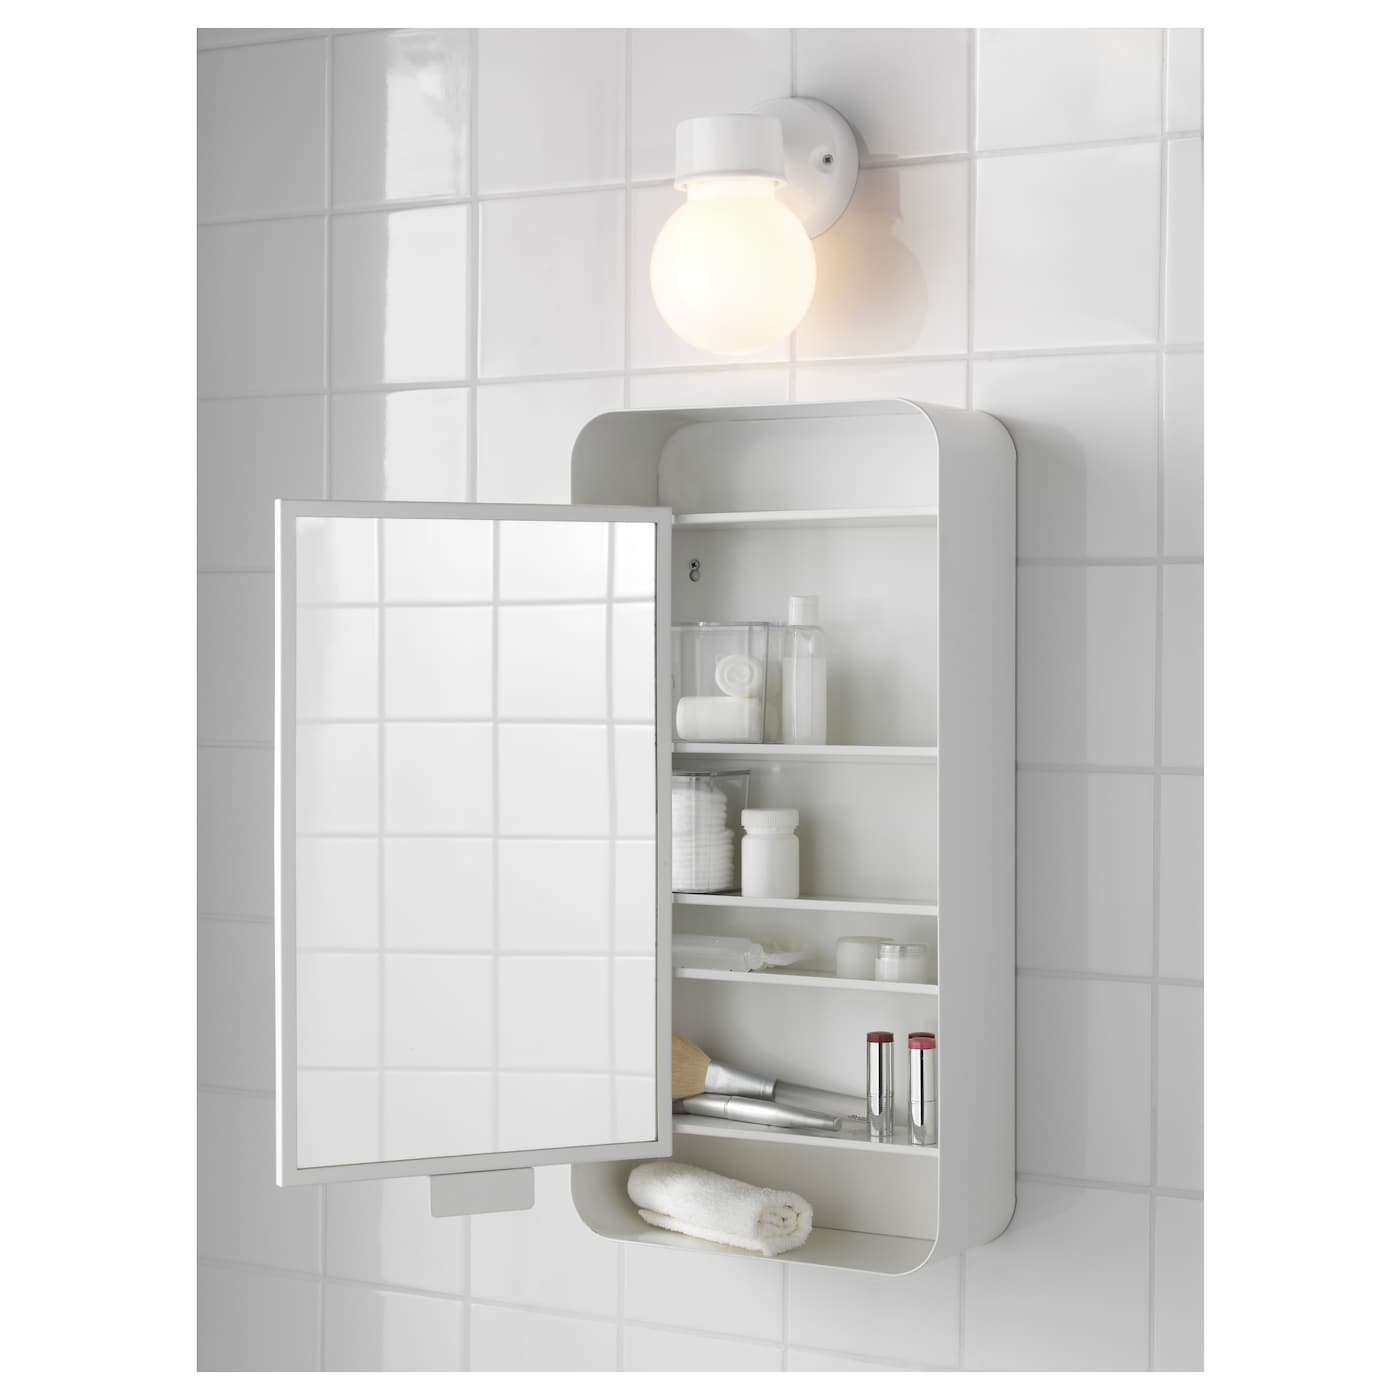 Gunnern mirror cabinet with 1 door white 31x62 cm ikea for Bathroom mirror cupboard